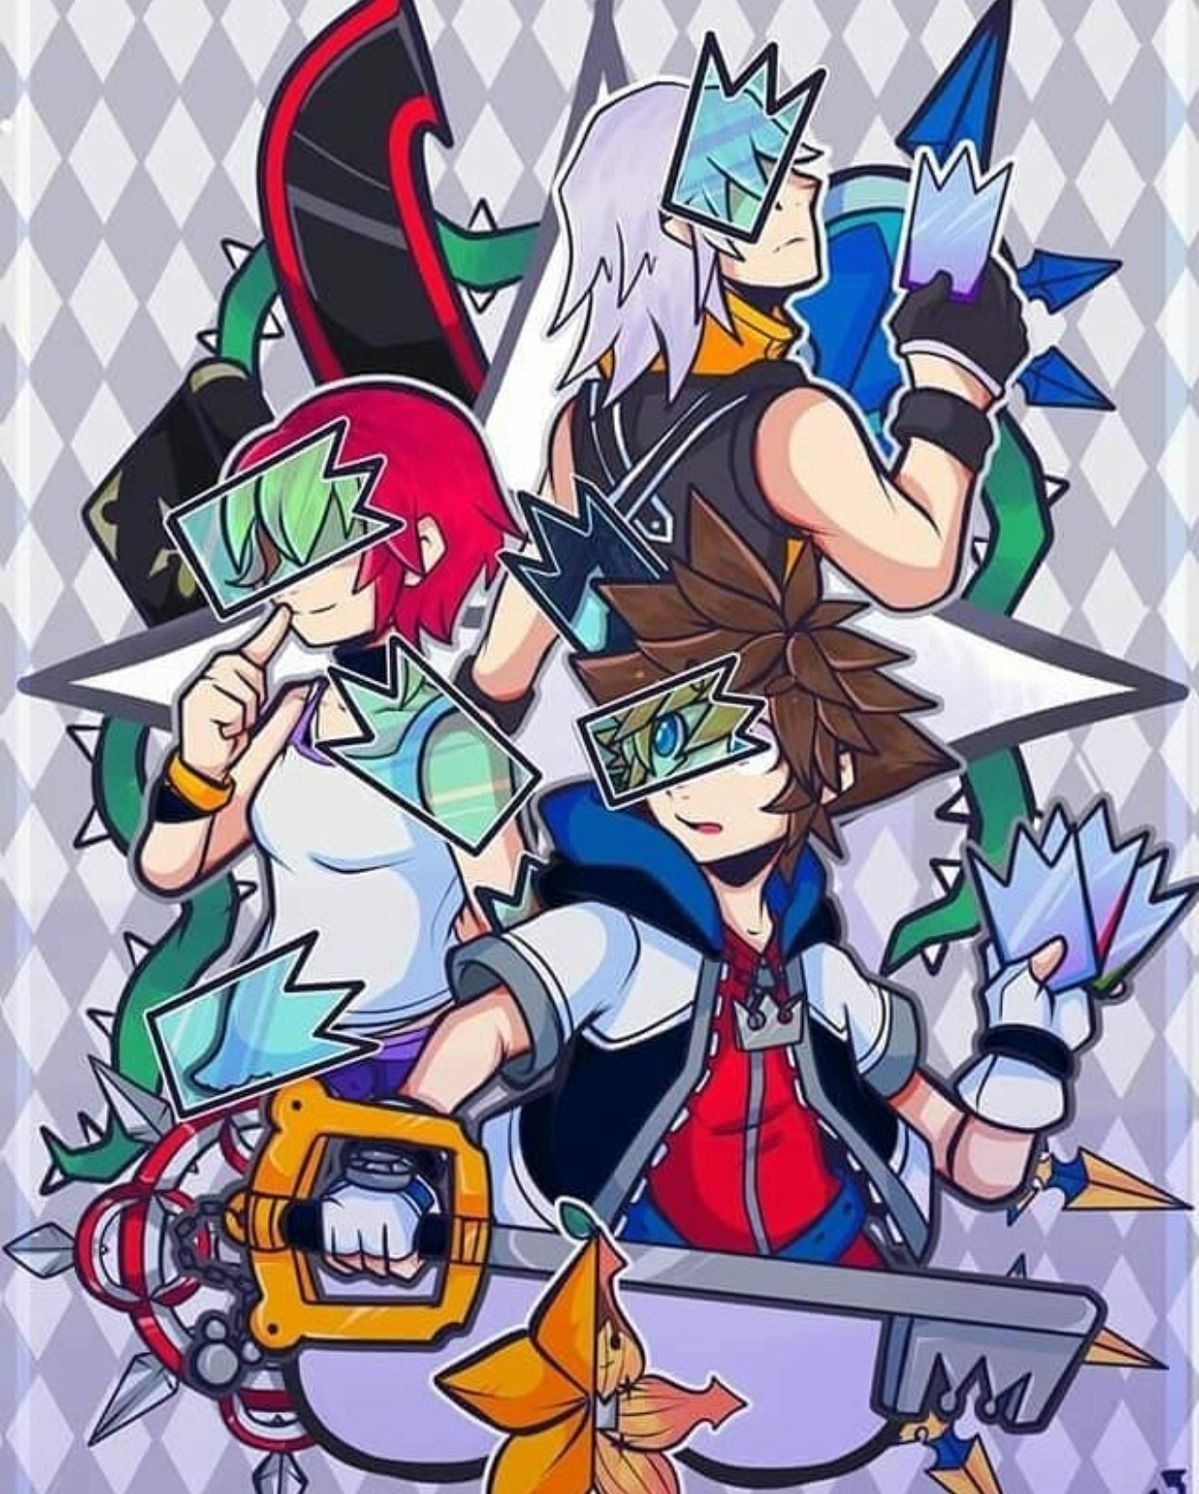 Pin By Emma Baldwin On Videogames Kingdom Hearts Fanart Kingdom